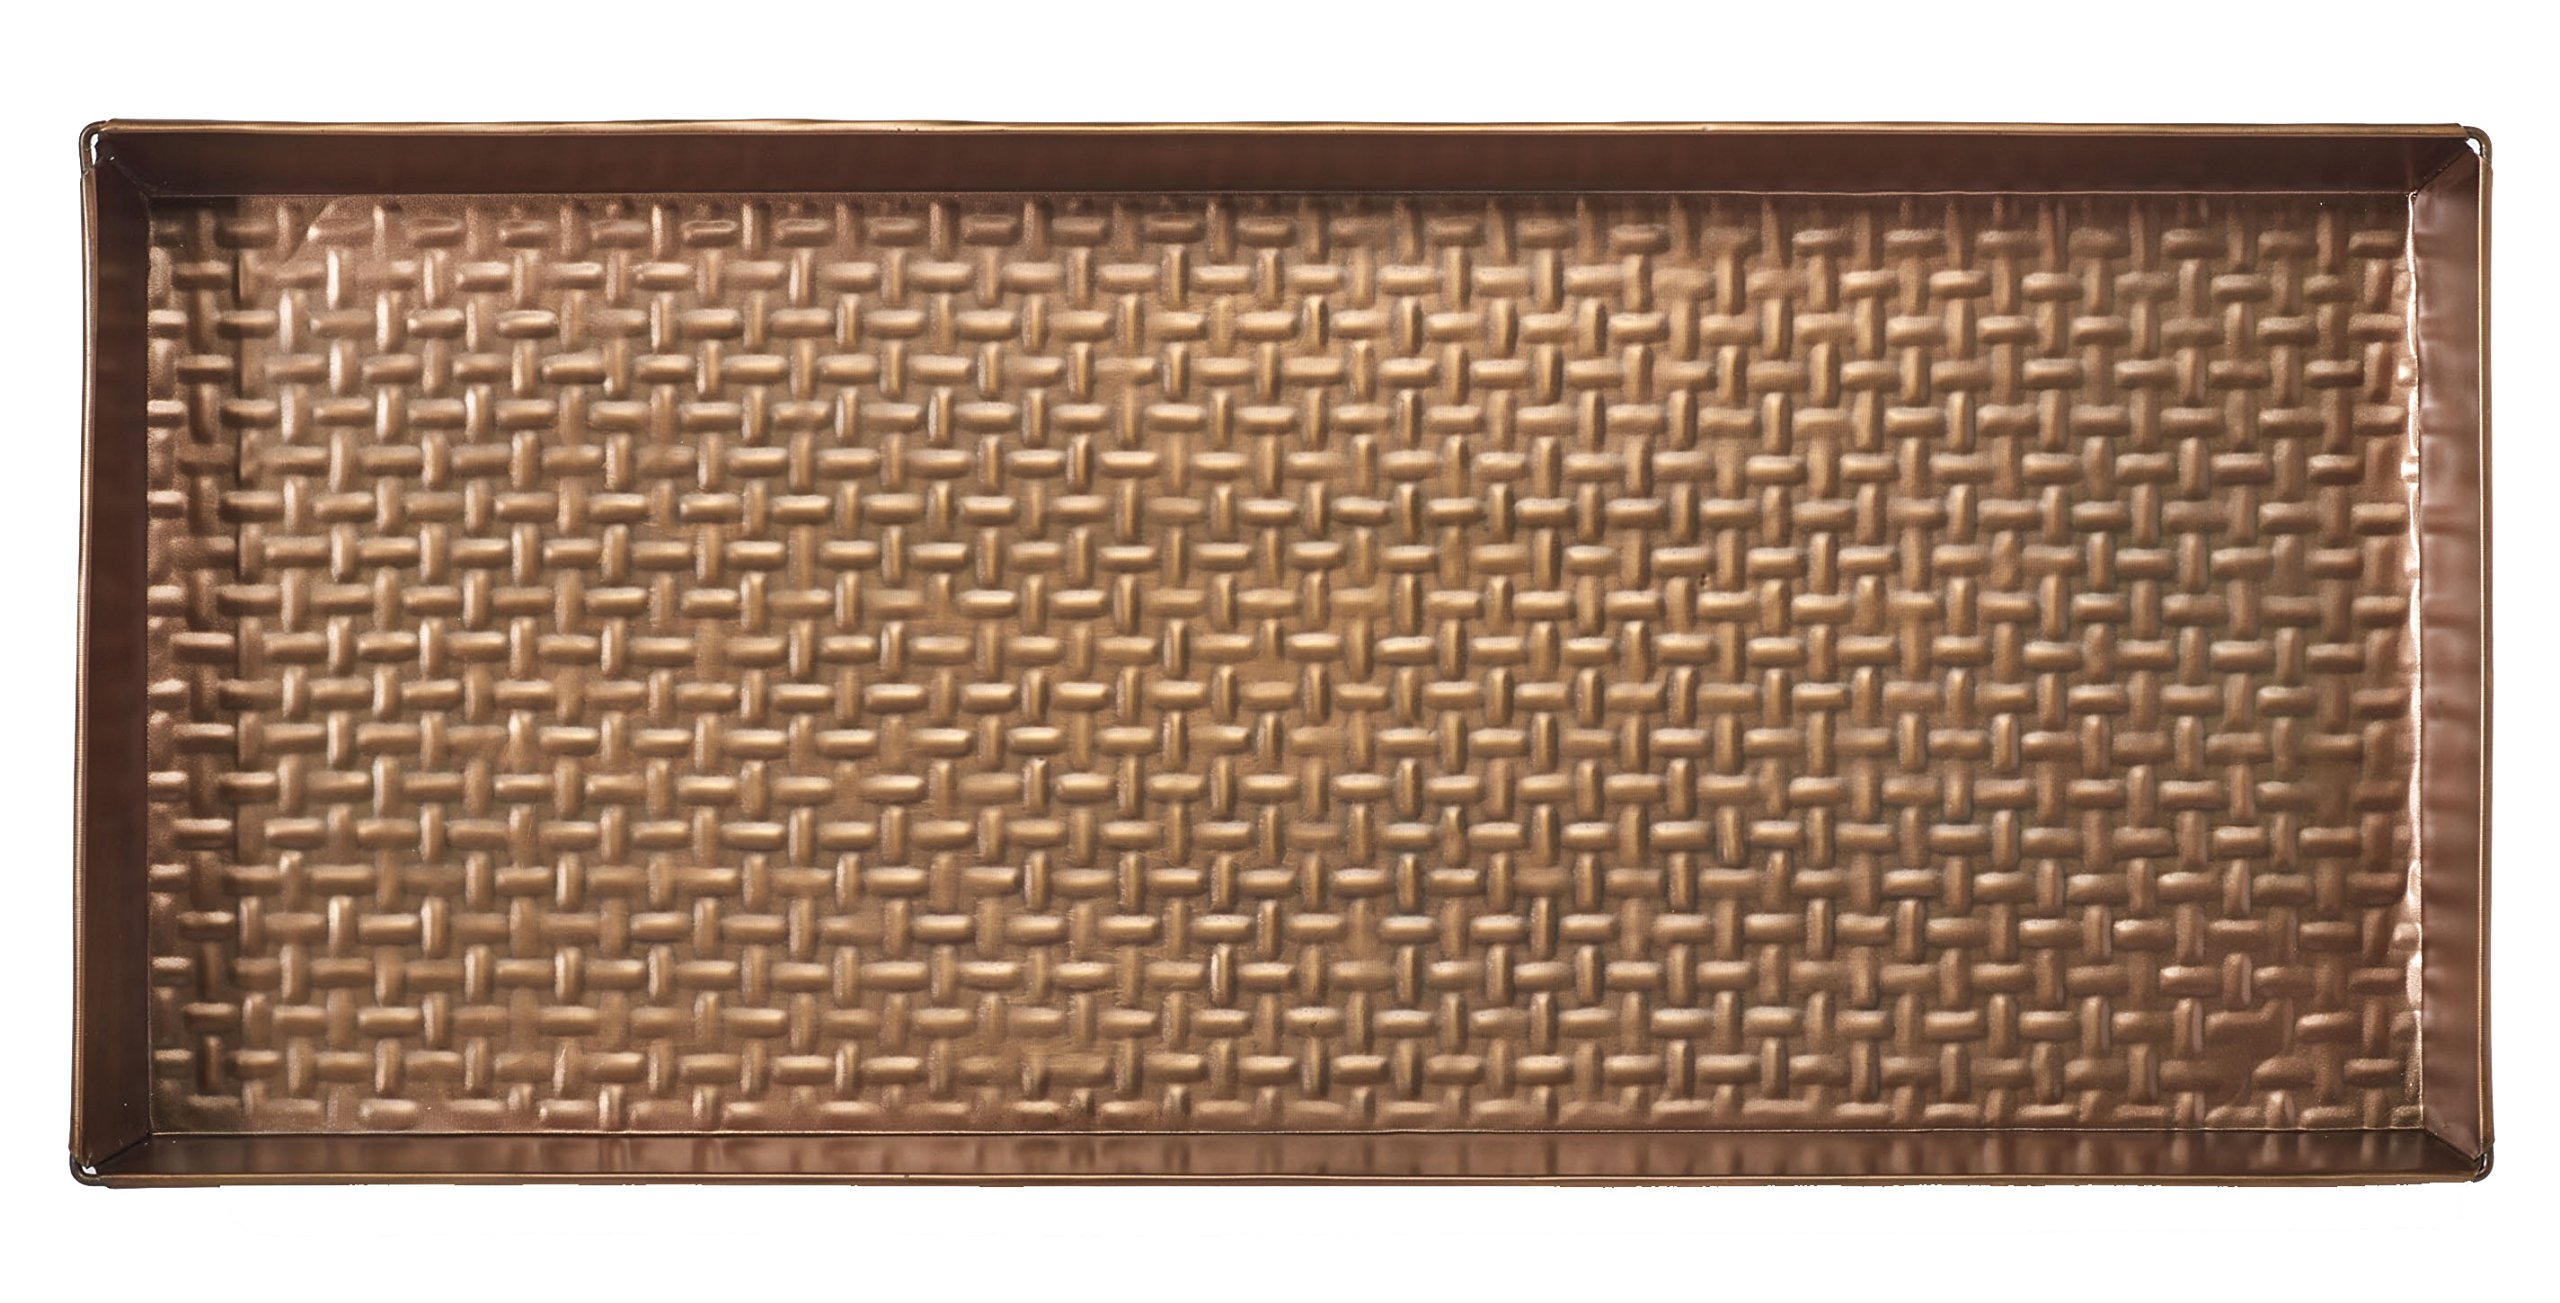 HF by LT Basketweave Pattern Metal Boot Tray, 30'' by 13'', Antique Copper Finish